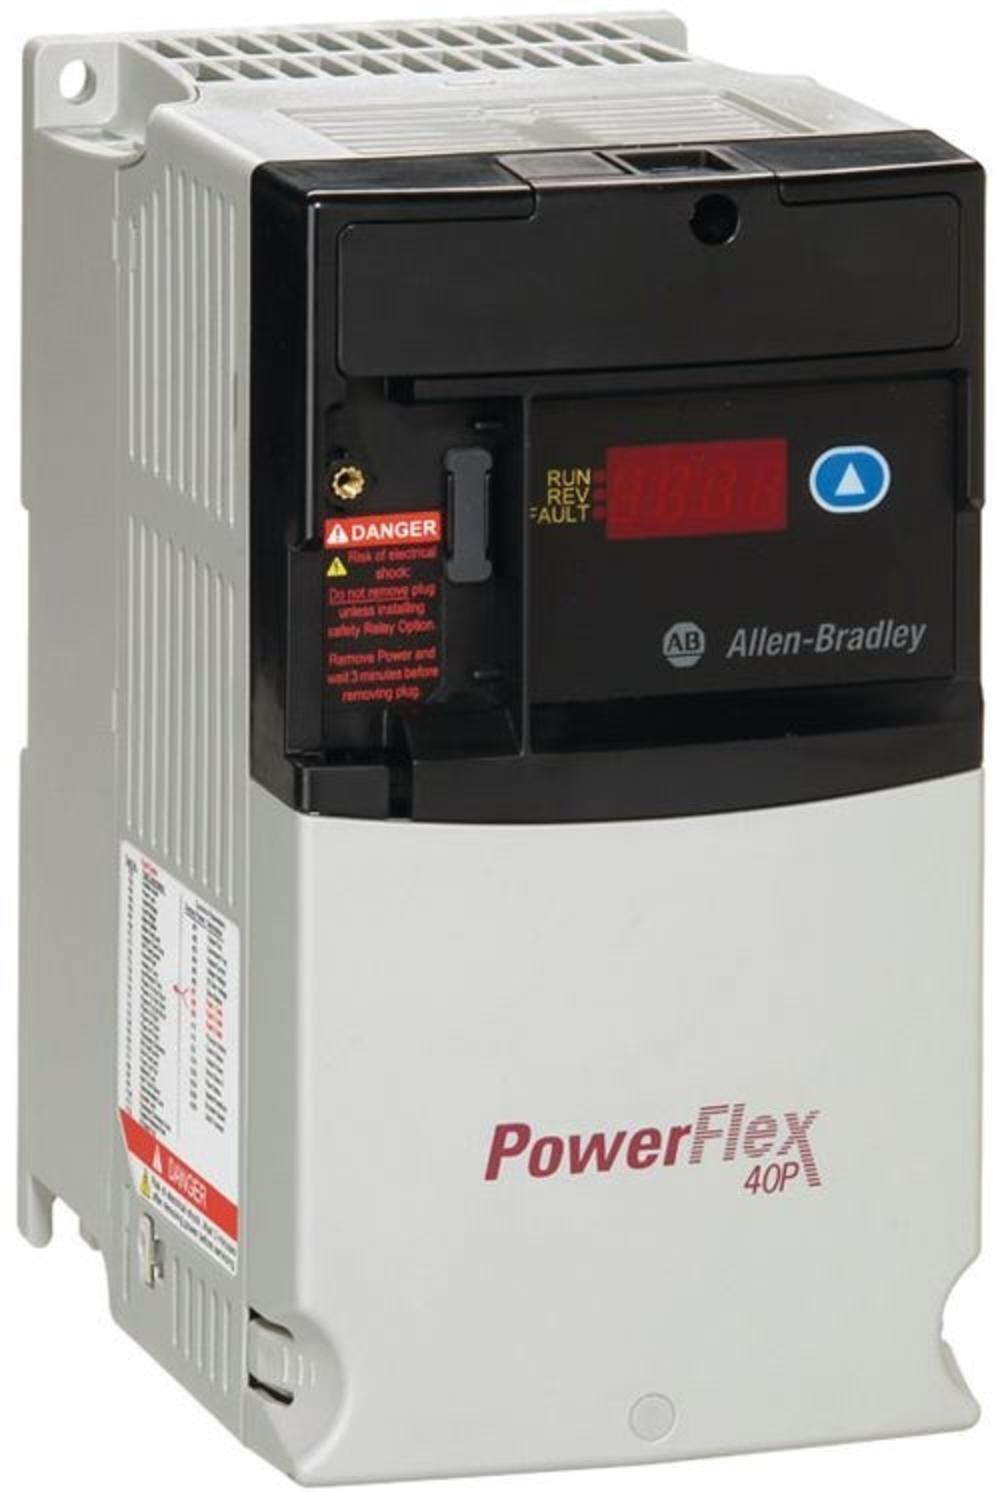 PowerFlex 40P